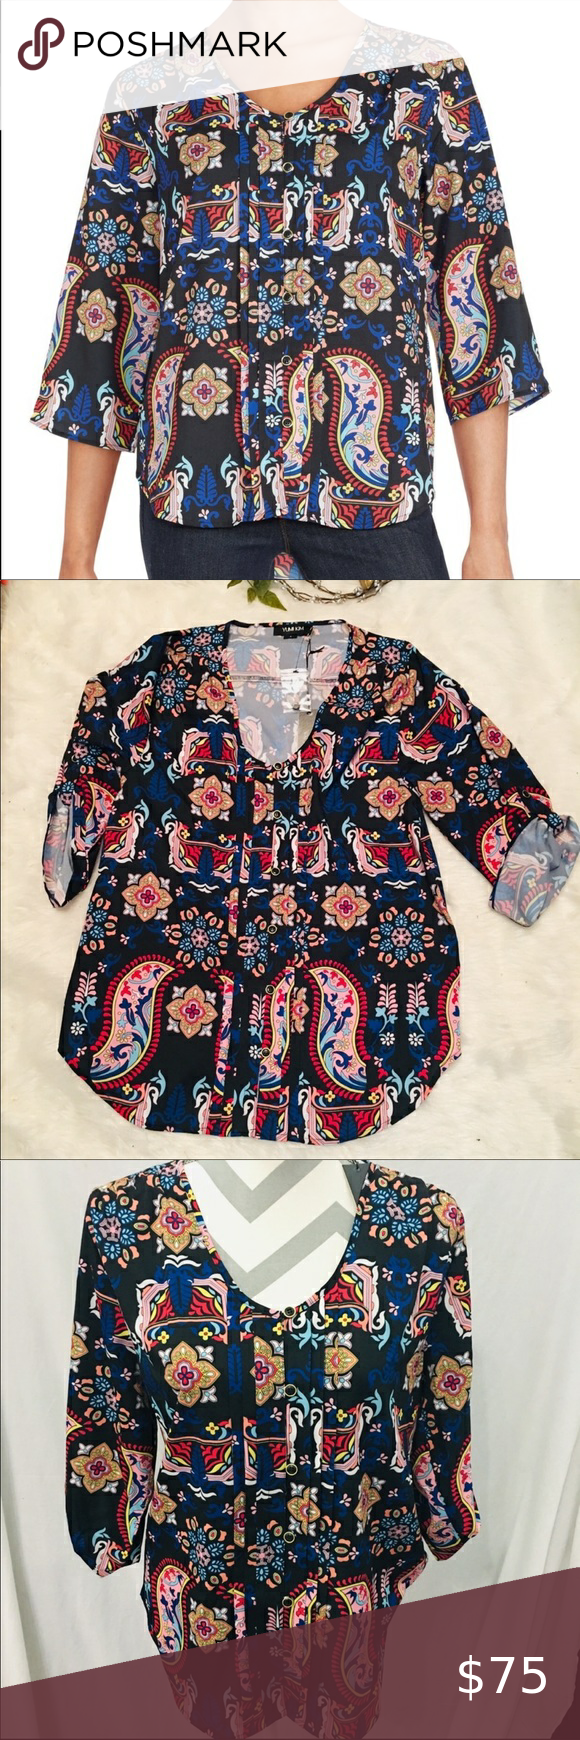 NWT!! Yumi Kim 3/4 Sleeve Floral Top Yumi Kim 3/4 Sleeve Floral Print Lightly High-Low Button Down Top  Beautiful, wearable art by Yumi Kim. Multicolor floral print on this button up front button blouse. V-neck with top button. Round high back neck hem. High-Low bottom hem. 3/4 Sleeve with Roll up tabs and bottoms on the sleeve. Can be worn rolled up, fully down, or tabbed. Beautiful and bright colors, bold and ready for warmer weather! Convertible to cooler wear with jeans and black boots.   Si #wearableart